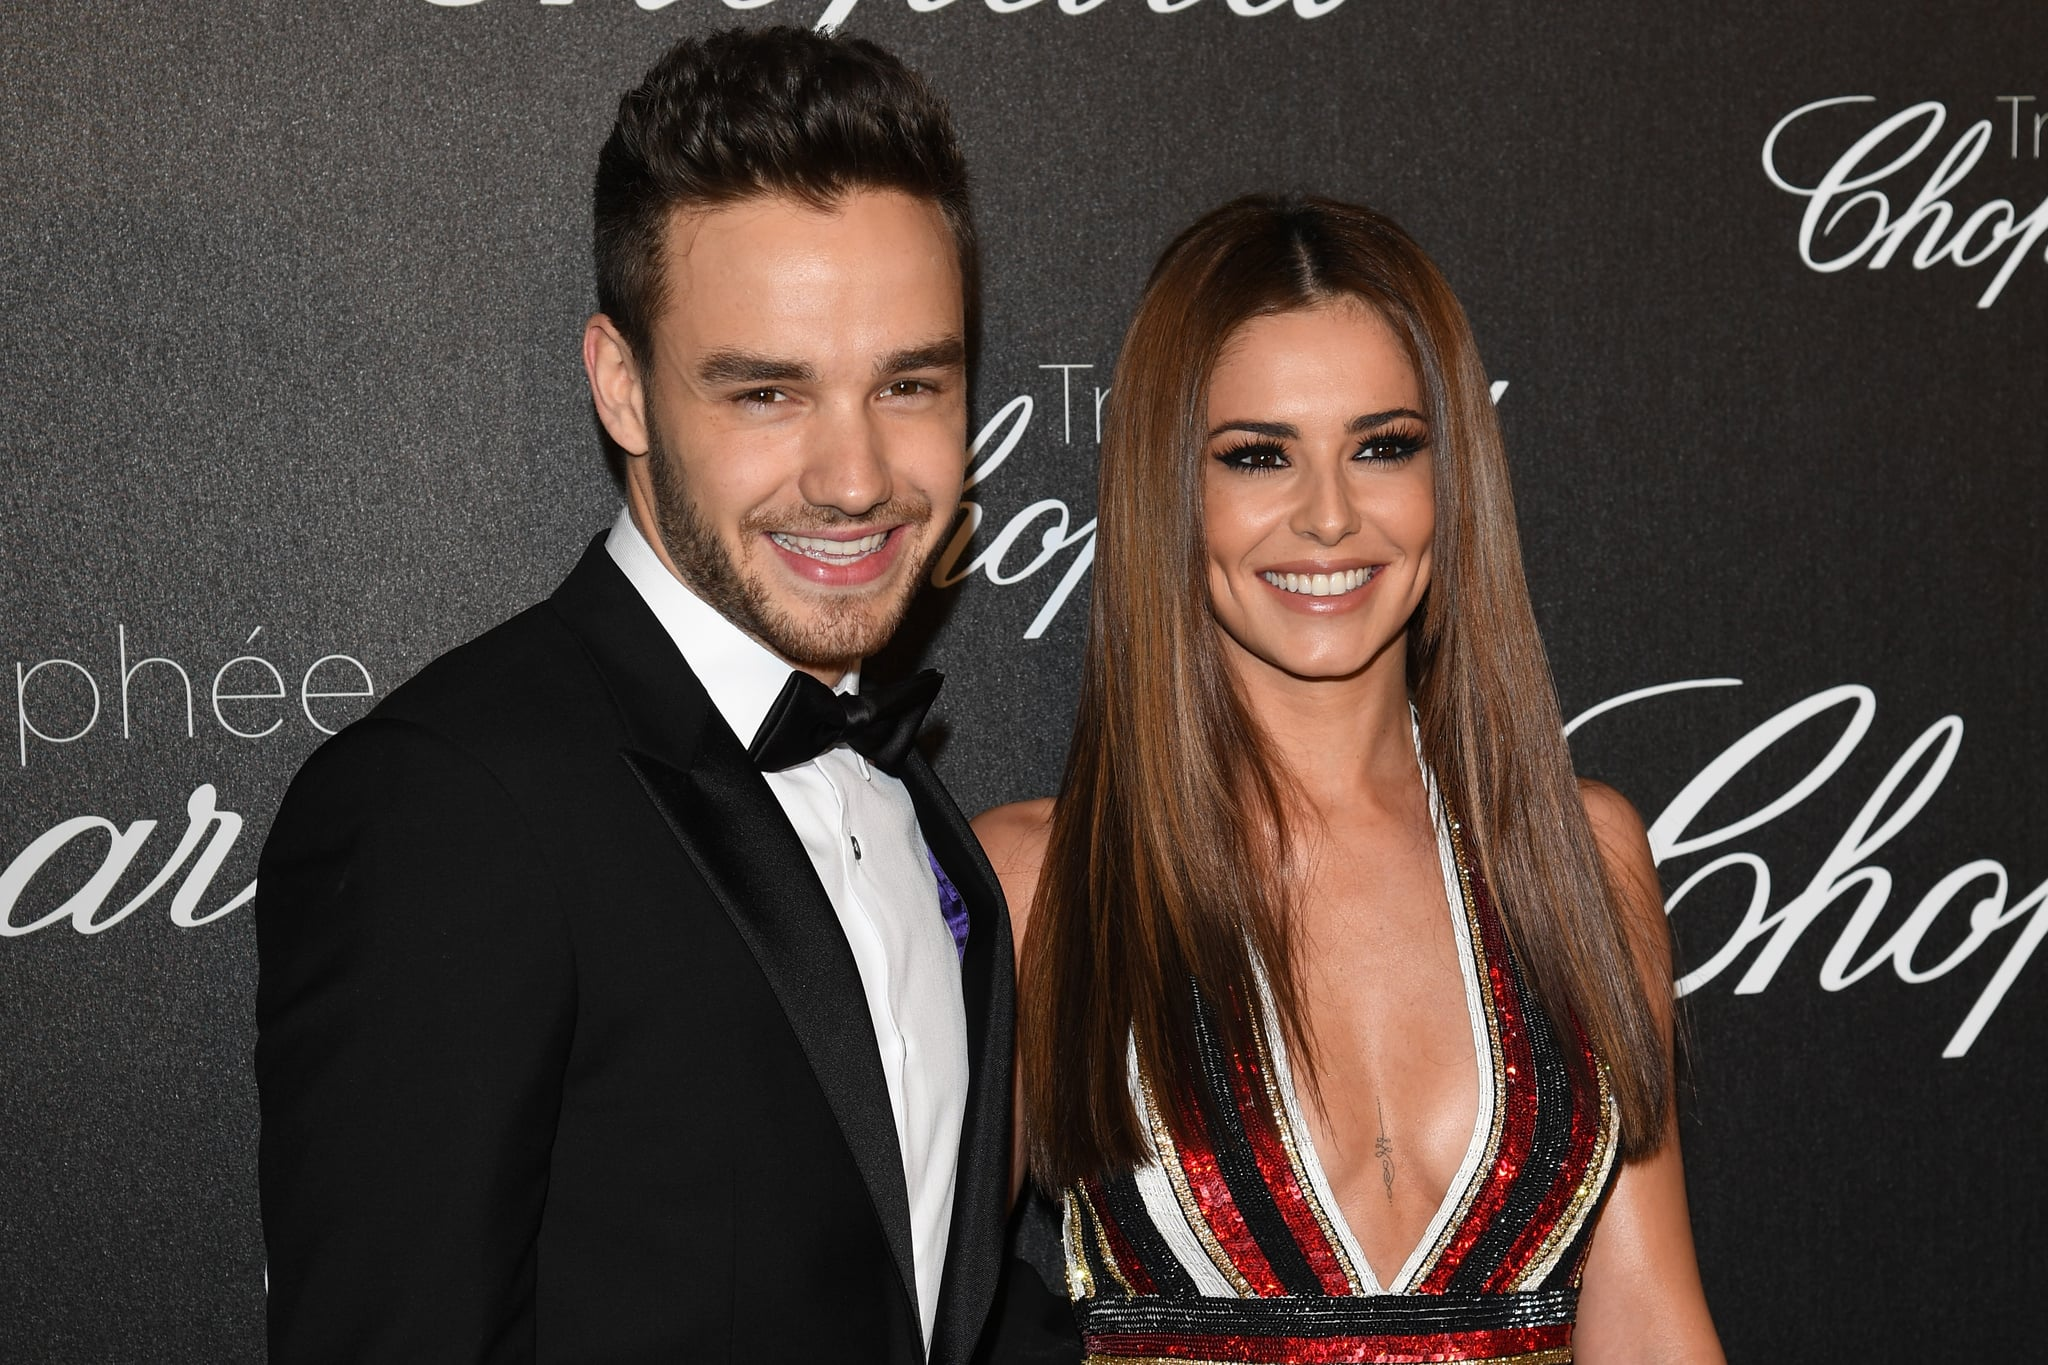 Wait, did Liam Payne and Cheryl just get married